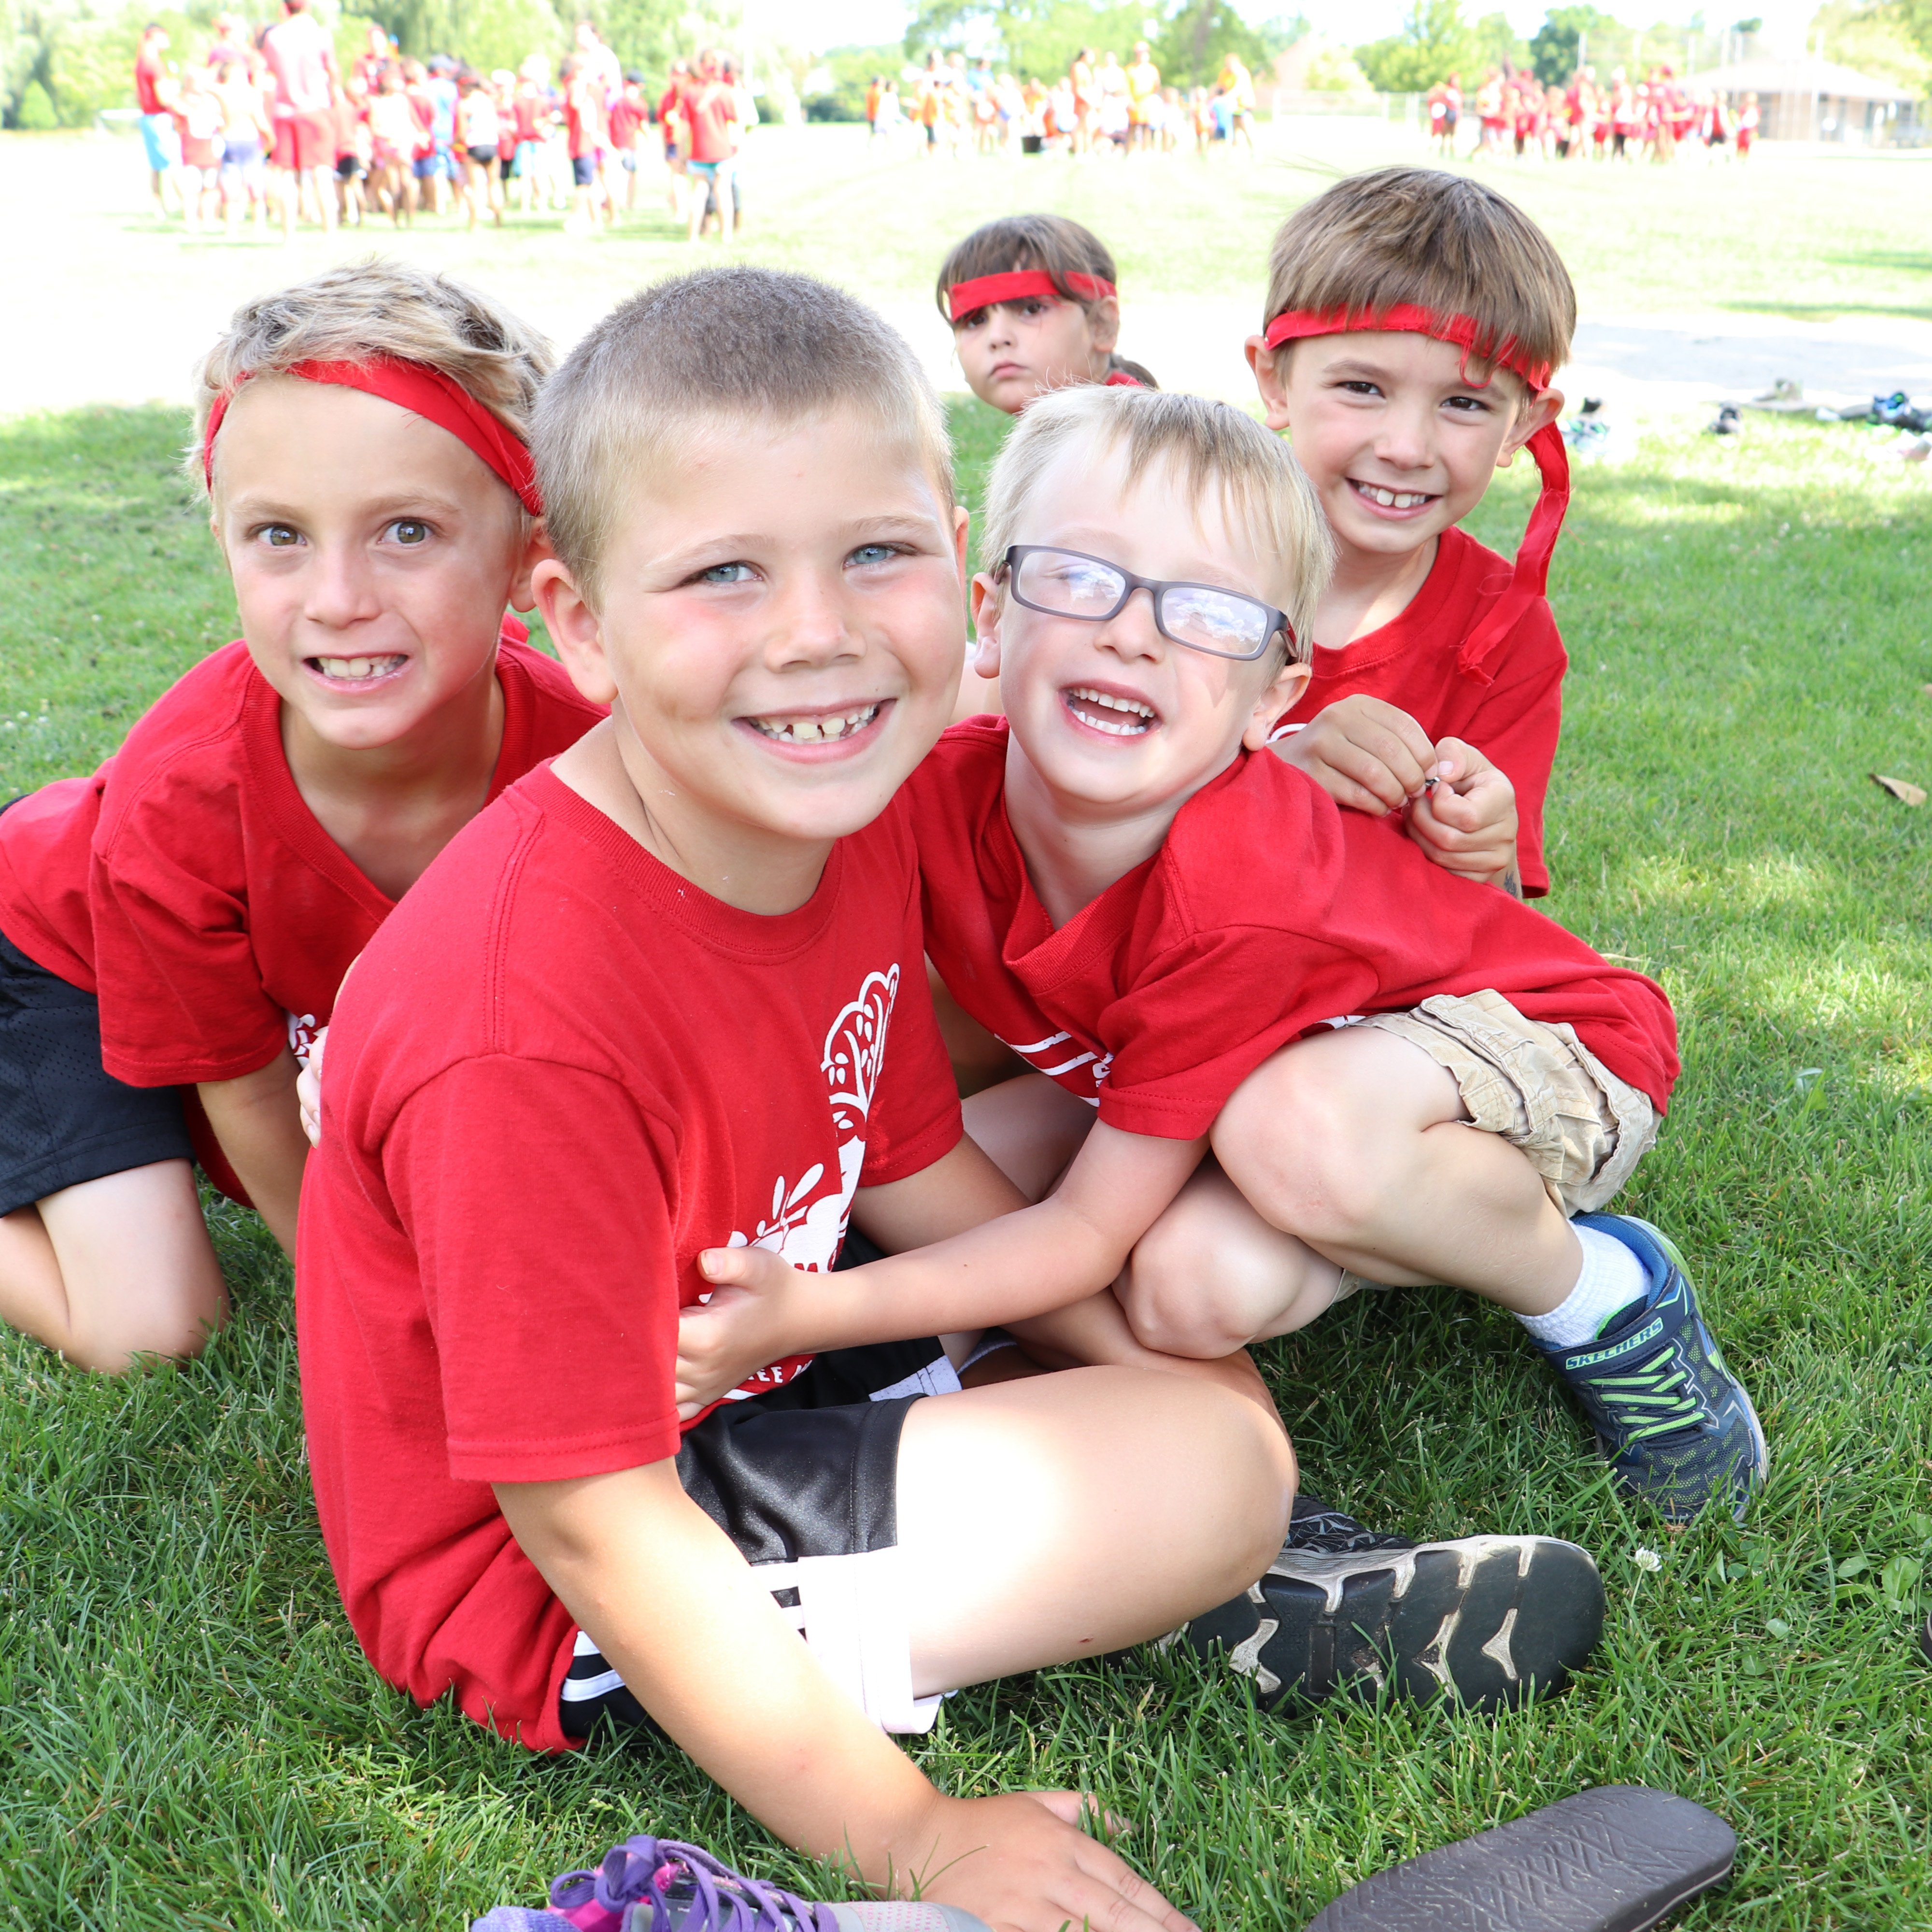 Summer camp in Gurnee